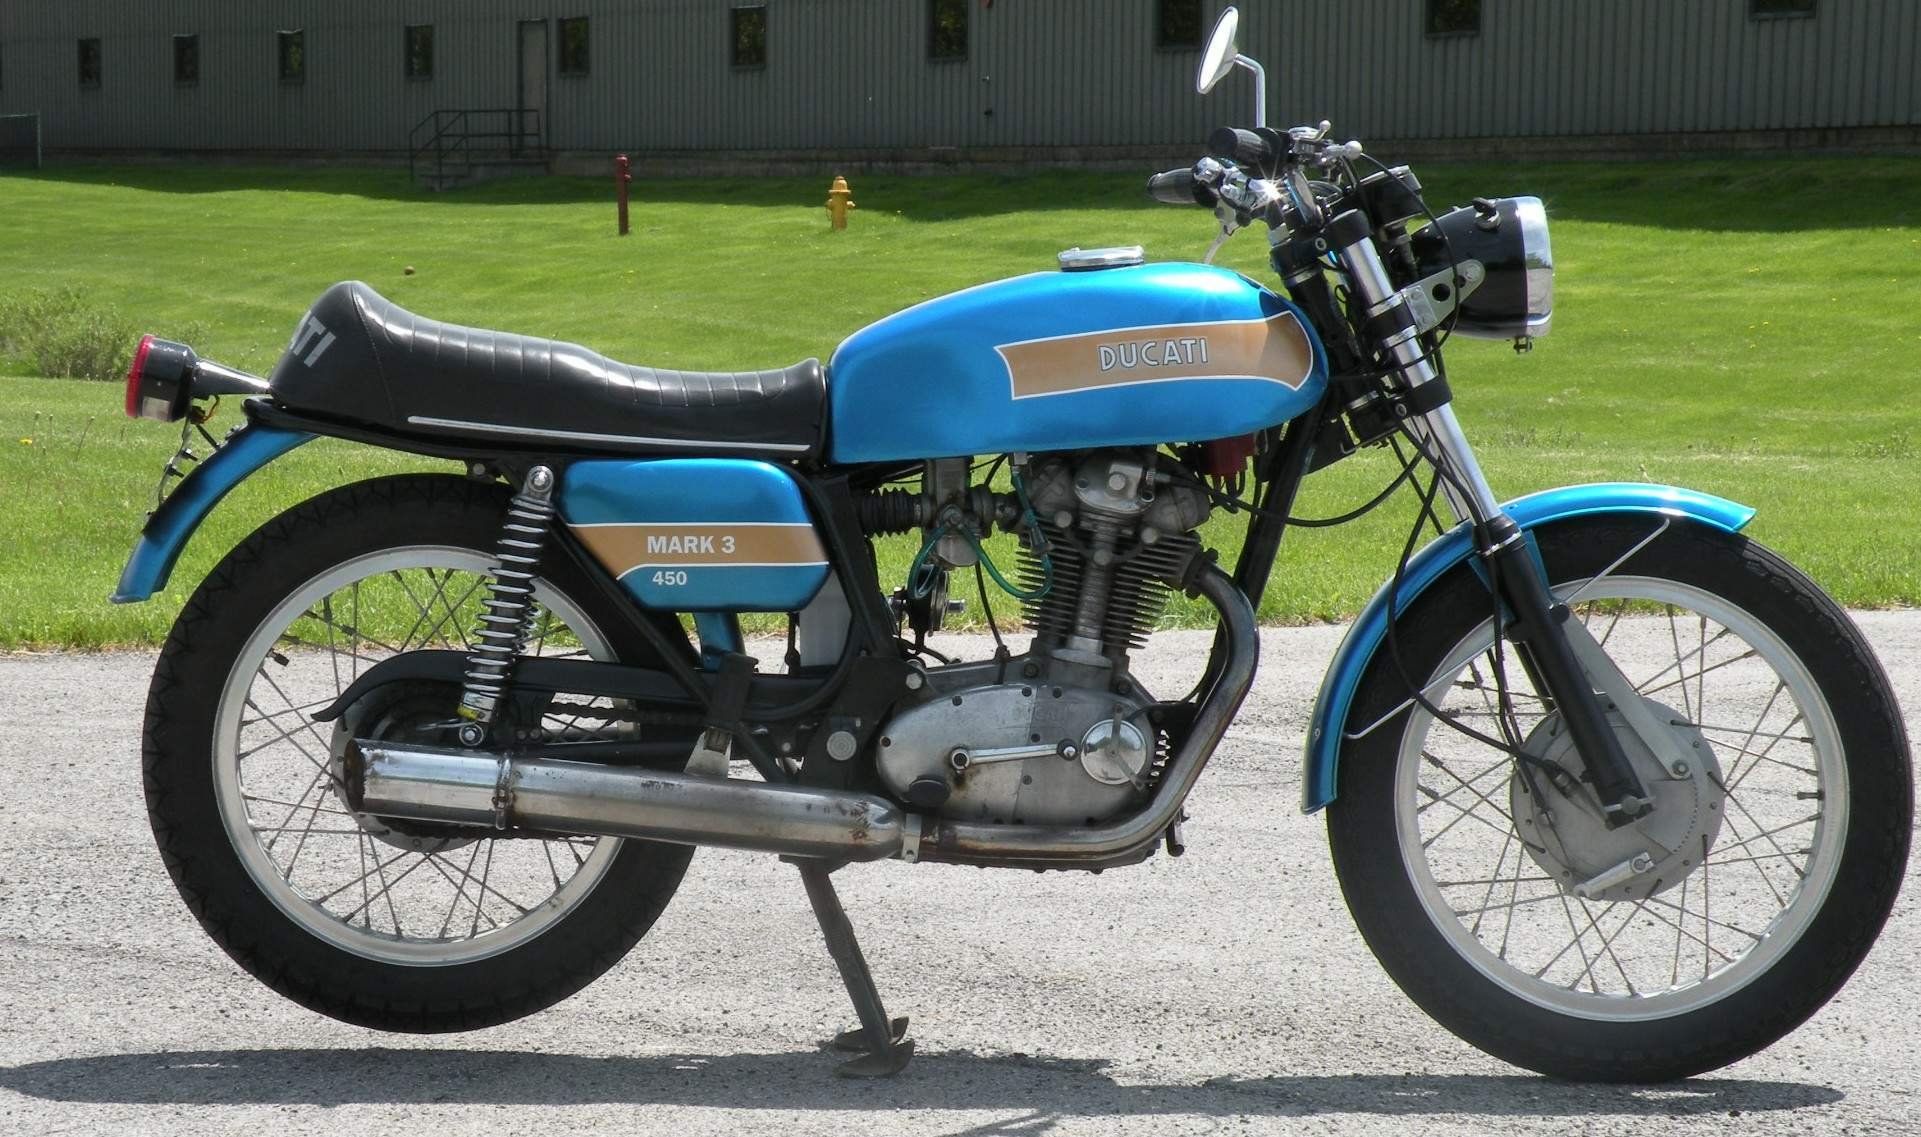 Ducati 450 Mark 3 D 1973 images #10286